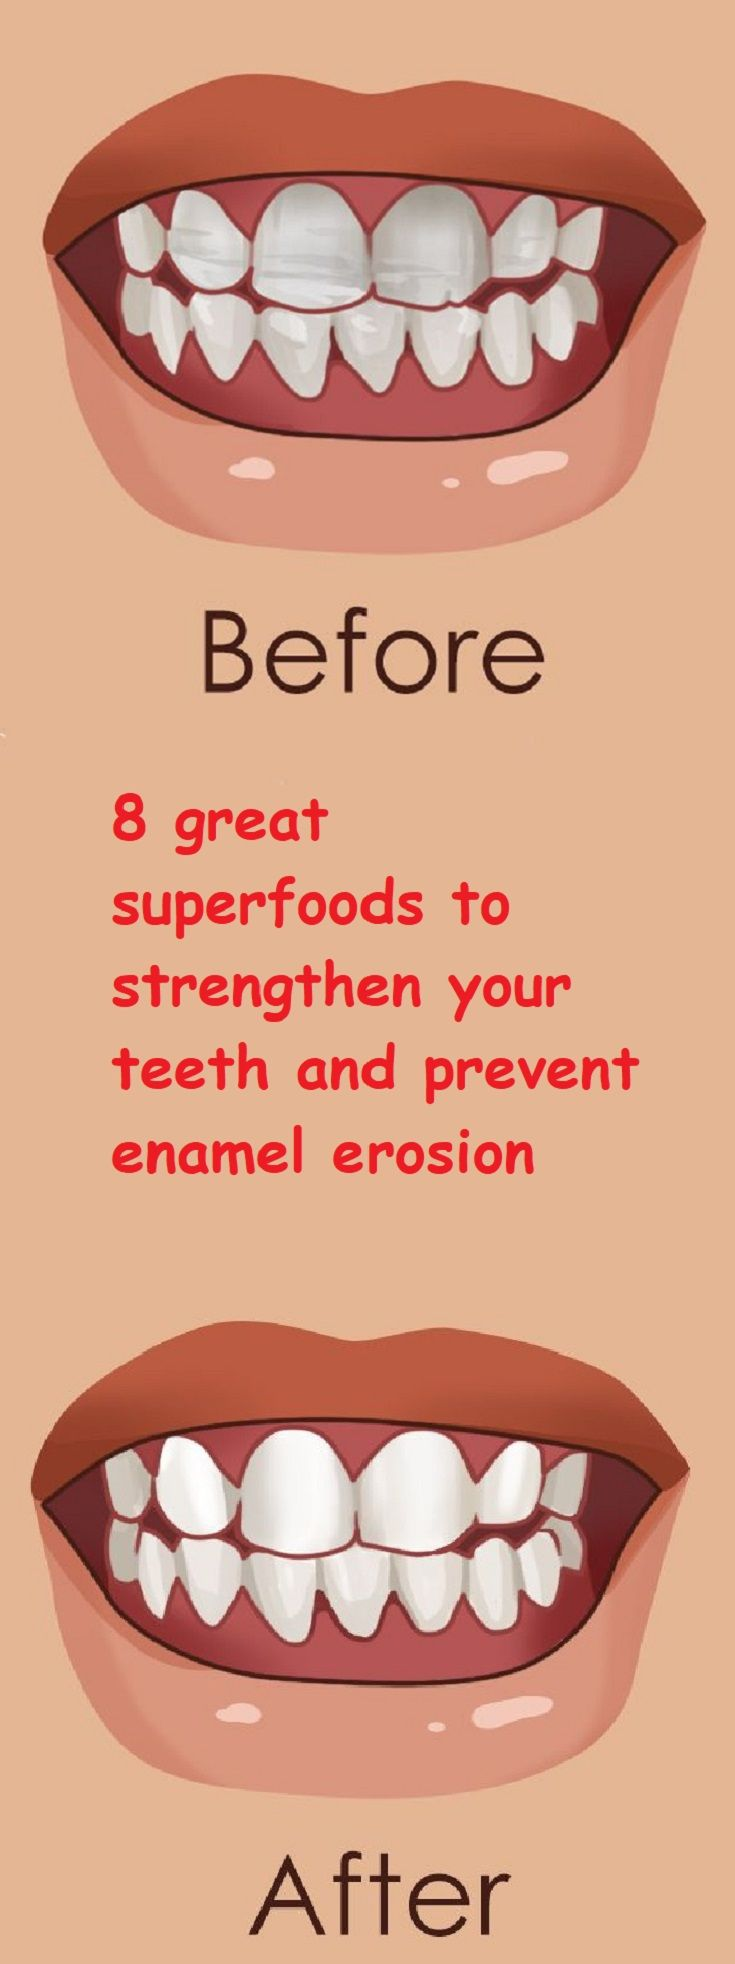 8 great superfoods to strengthen your teeth and prevent